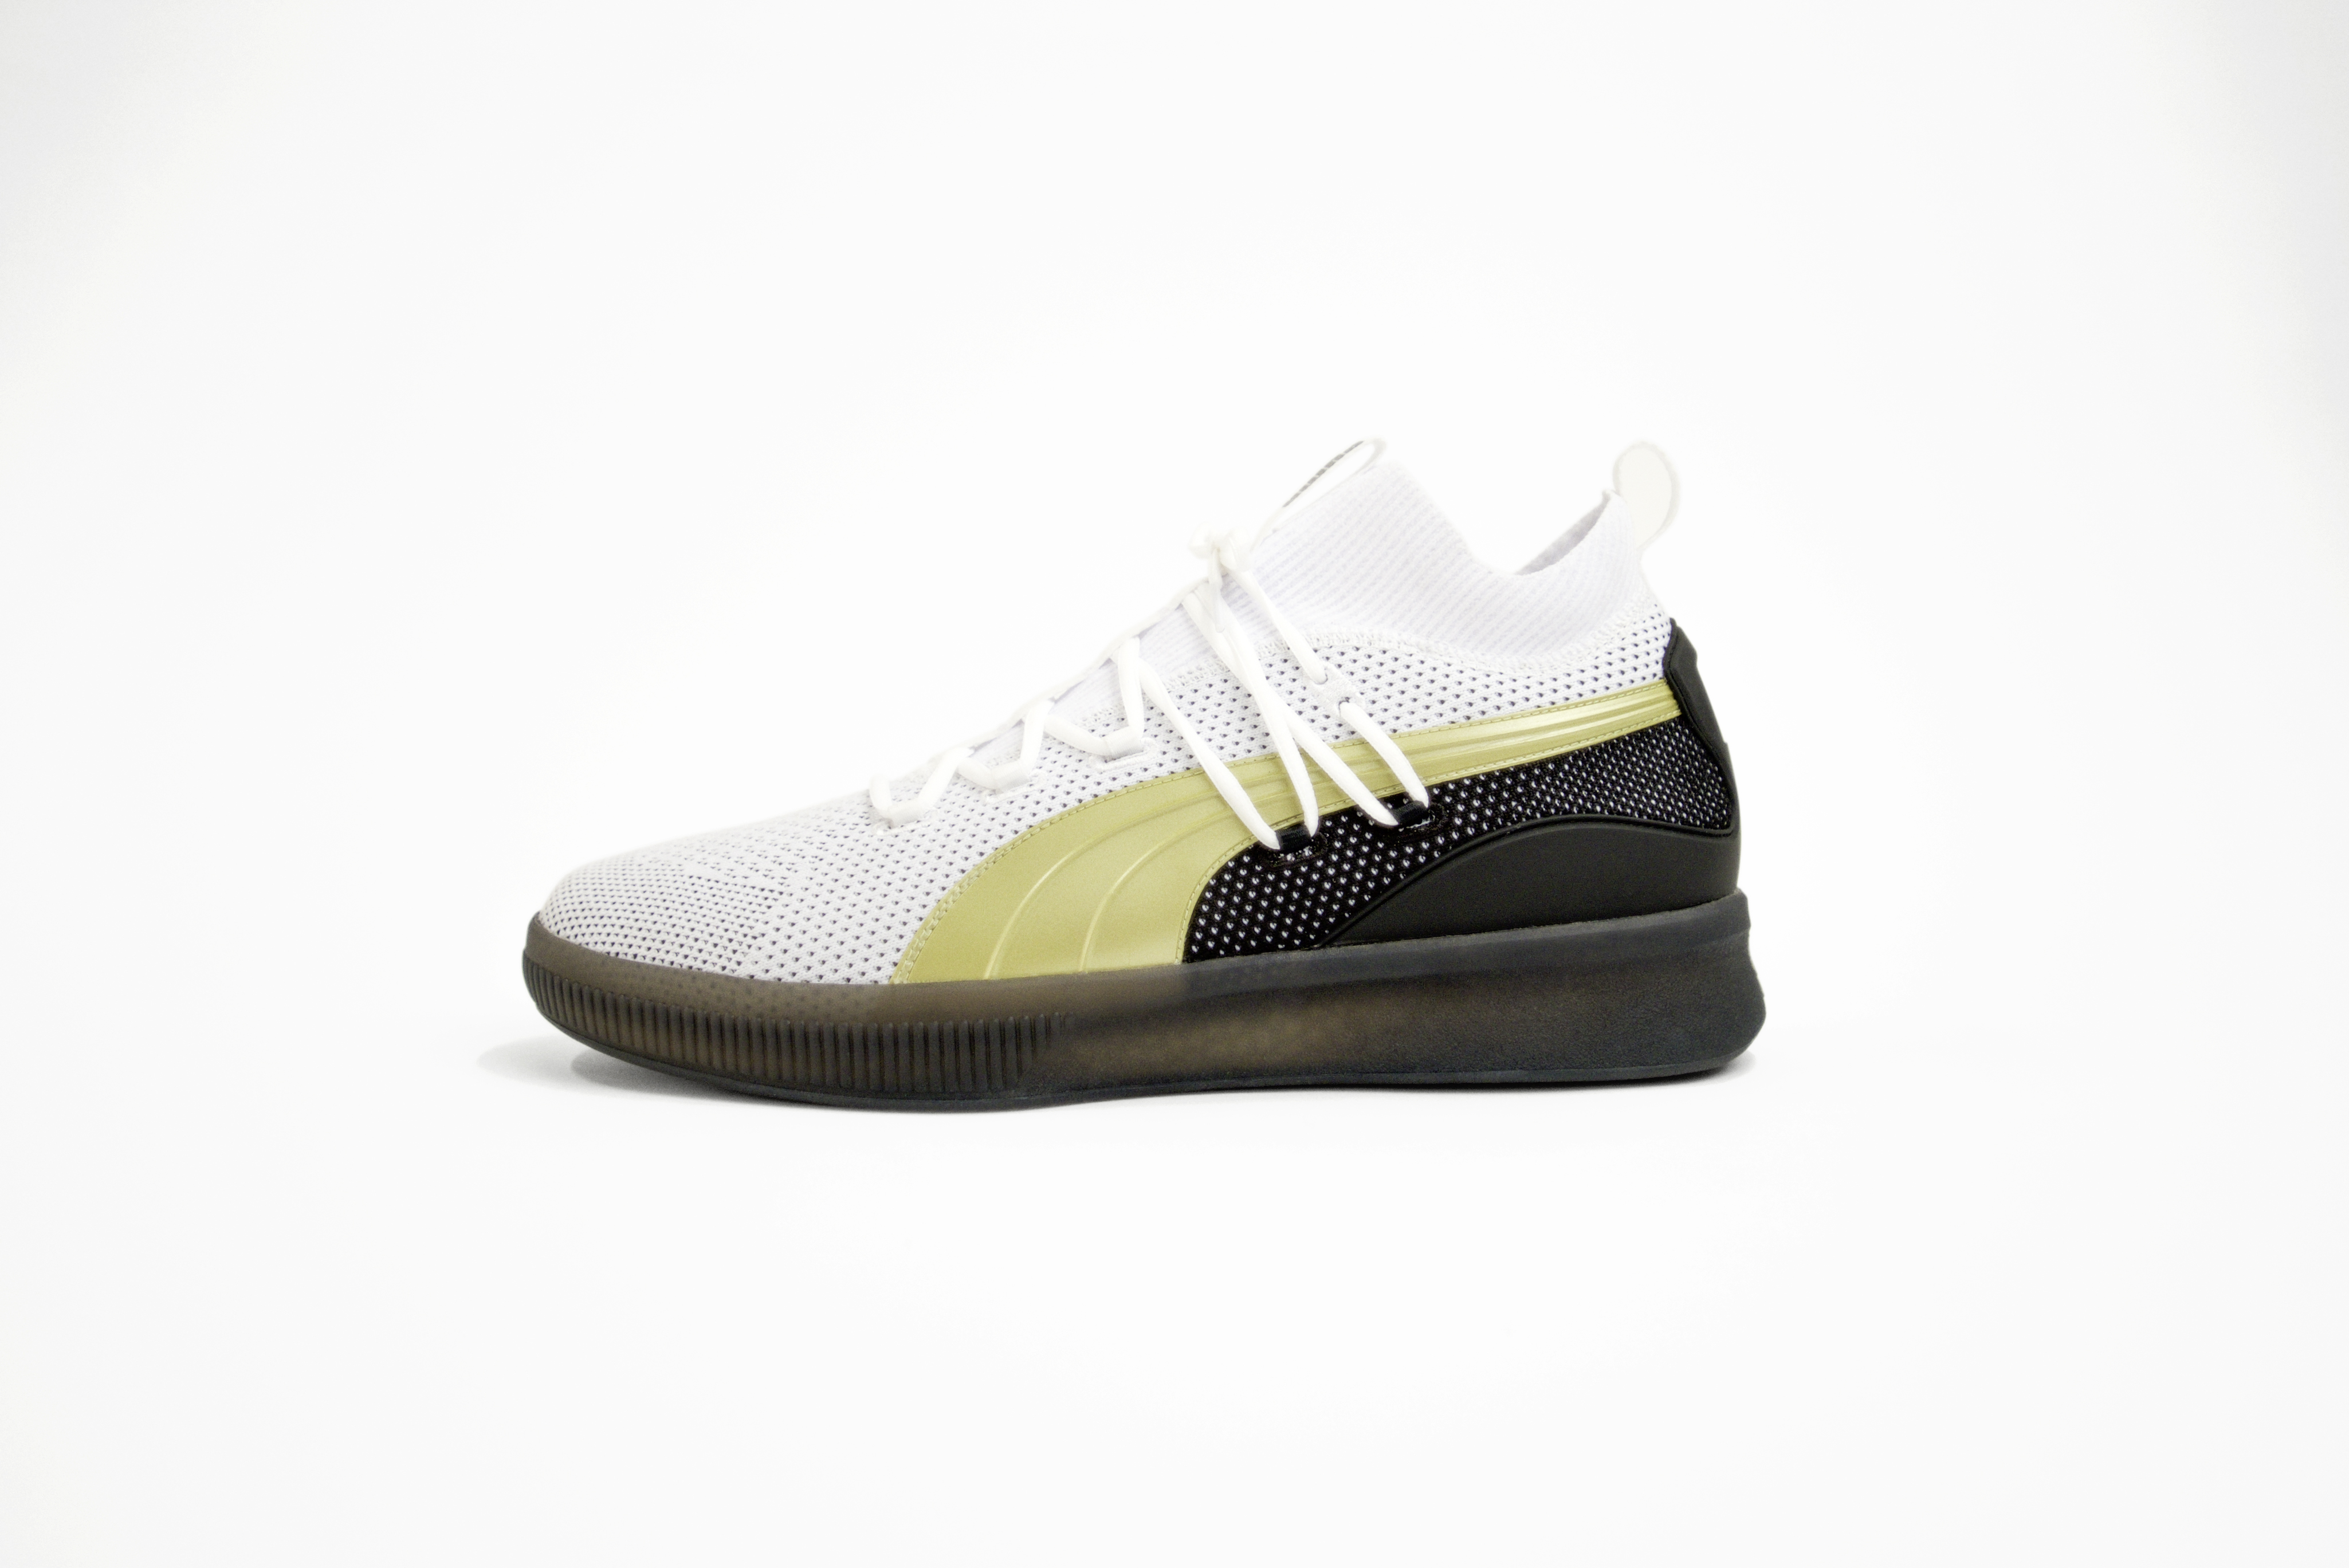 Danny Green Shoes Puma 61 Off Toledoacademyofmedicine Org